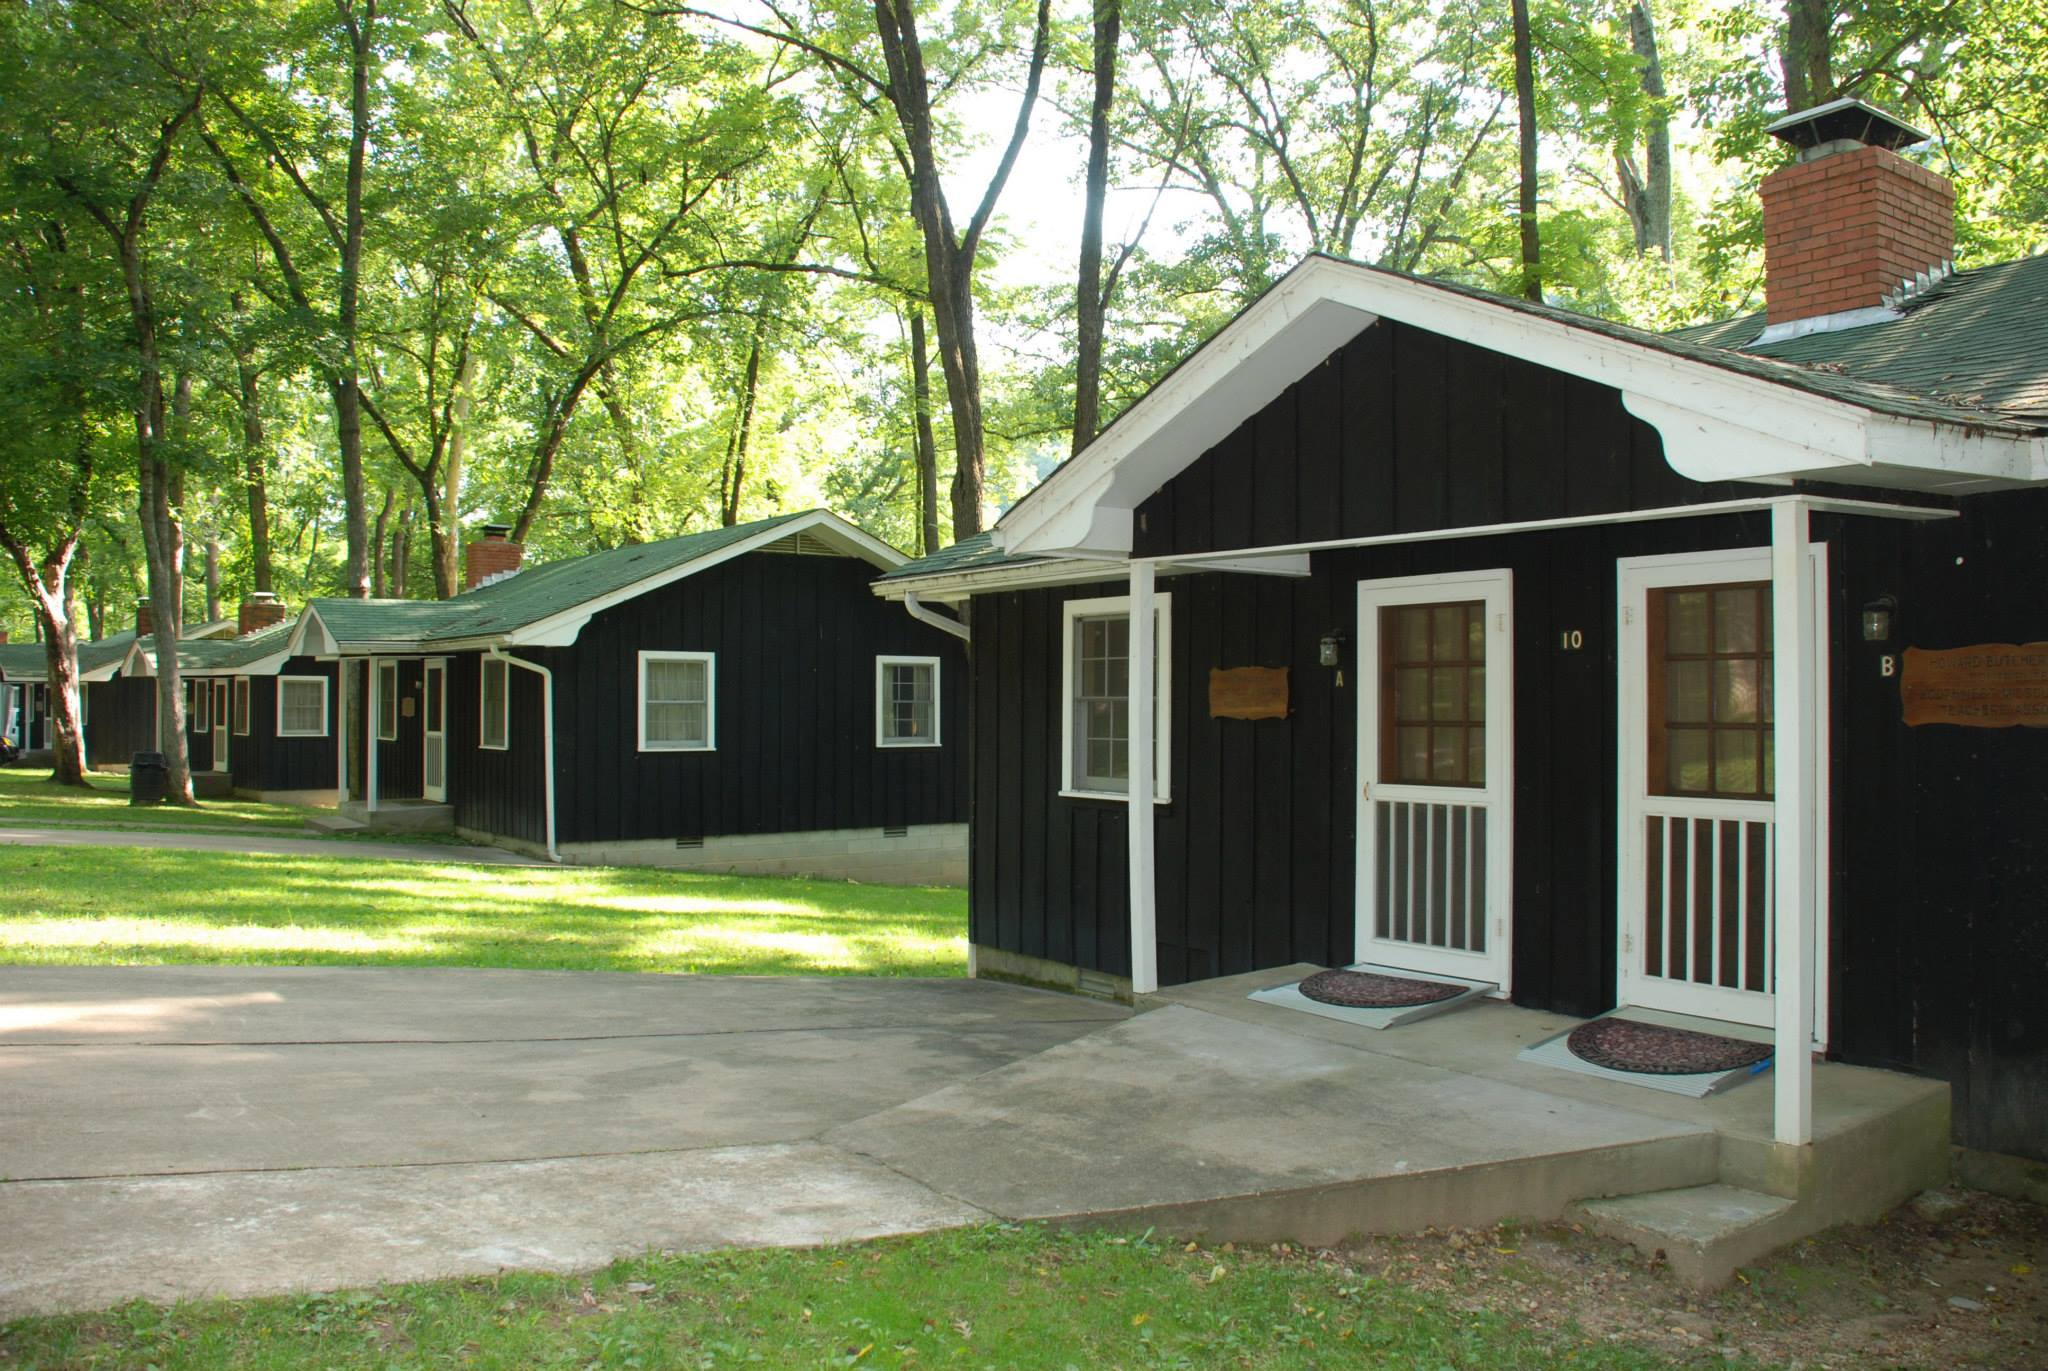 There are a variety of cabins for MOC members to choose from at Bunker Hill.